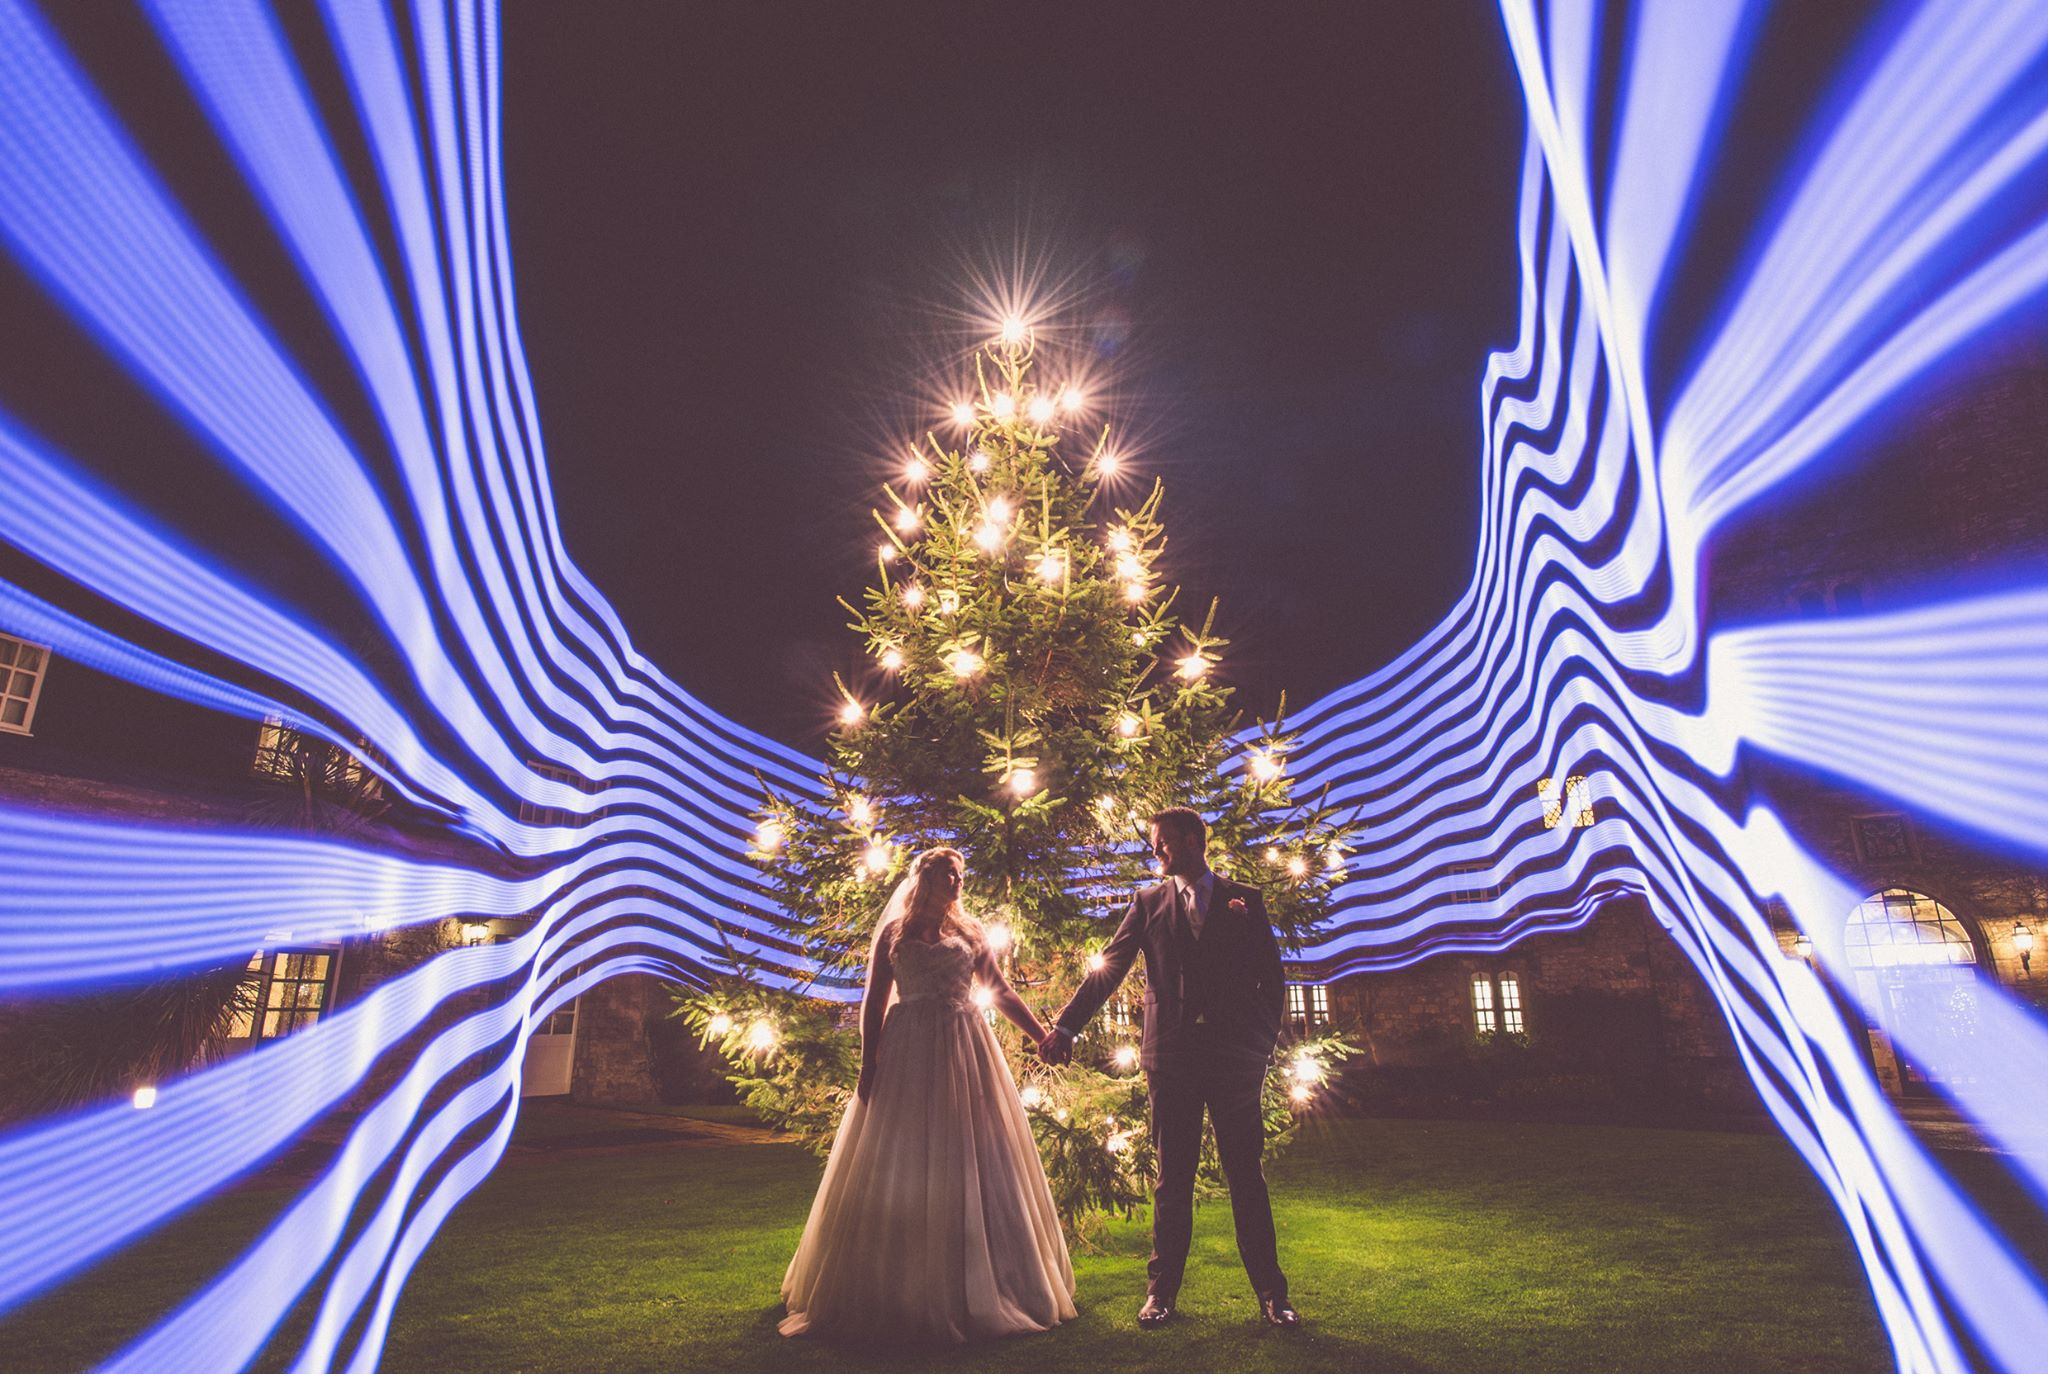 Wedding Portrait by Nick Murray Uses Creative Light Painting